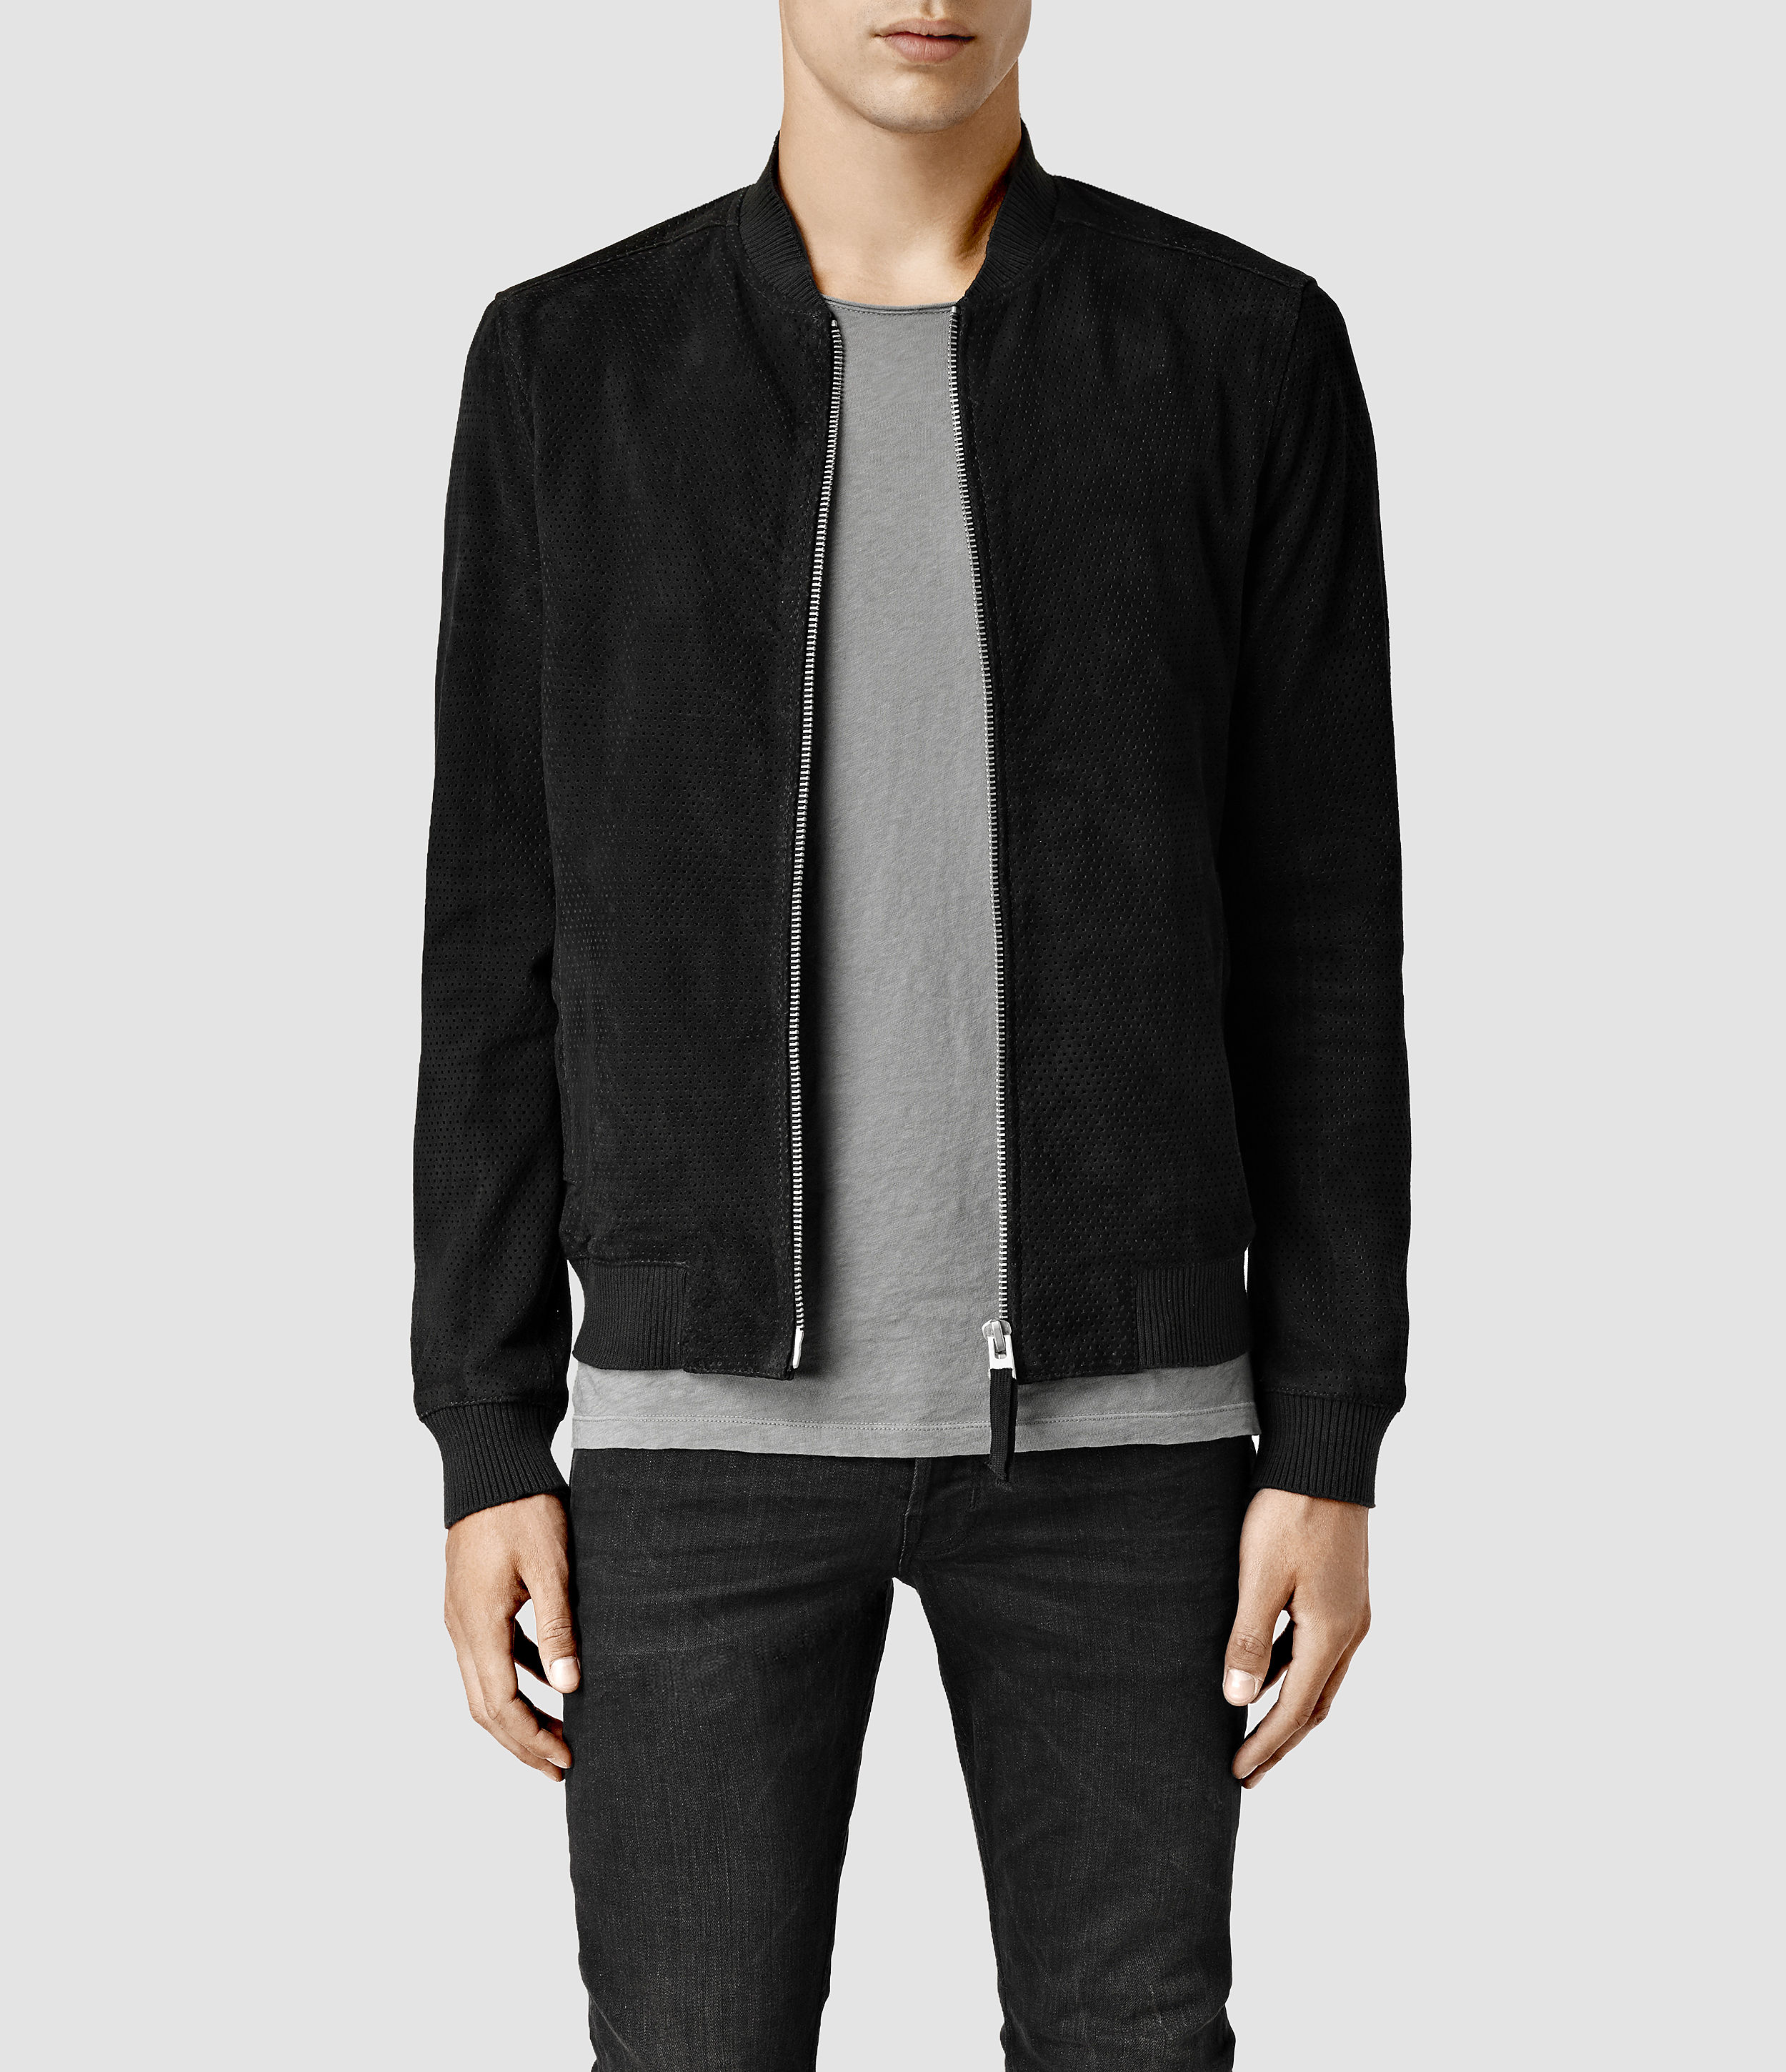 Allsaints Armoury Leather Bomber Jacket in Black for Men | Lyst